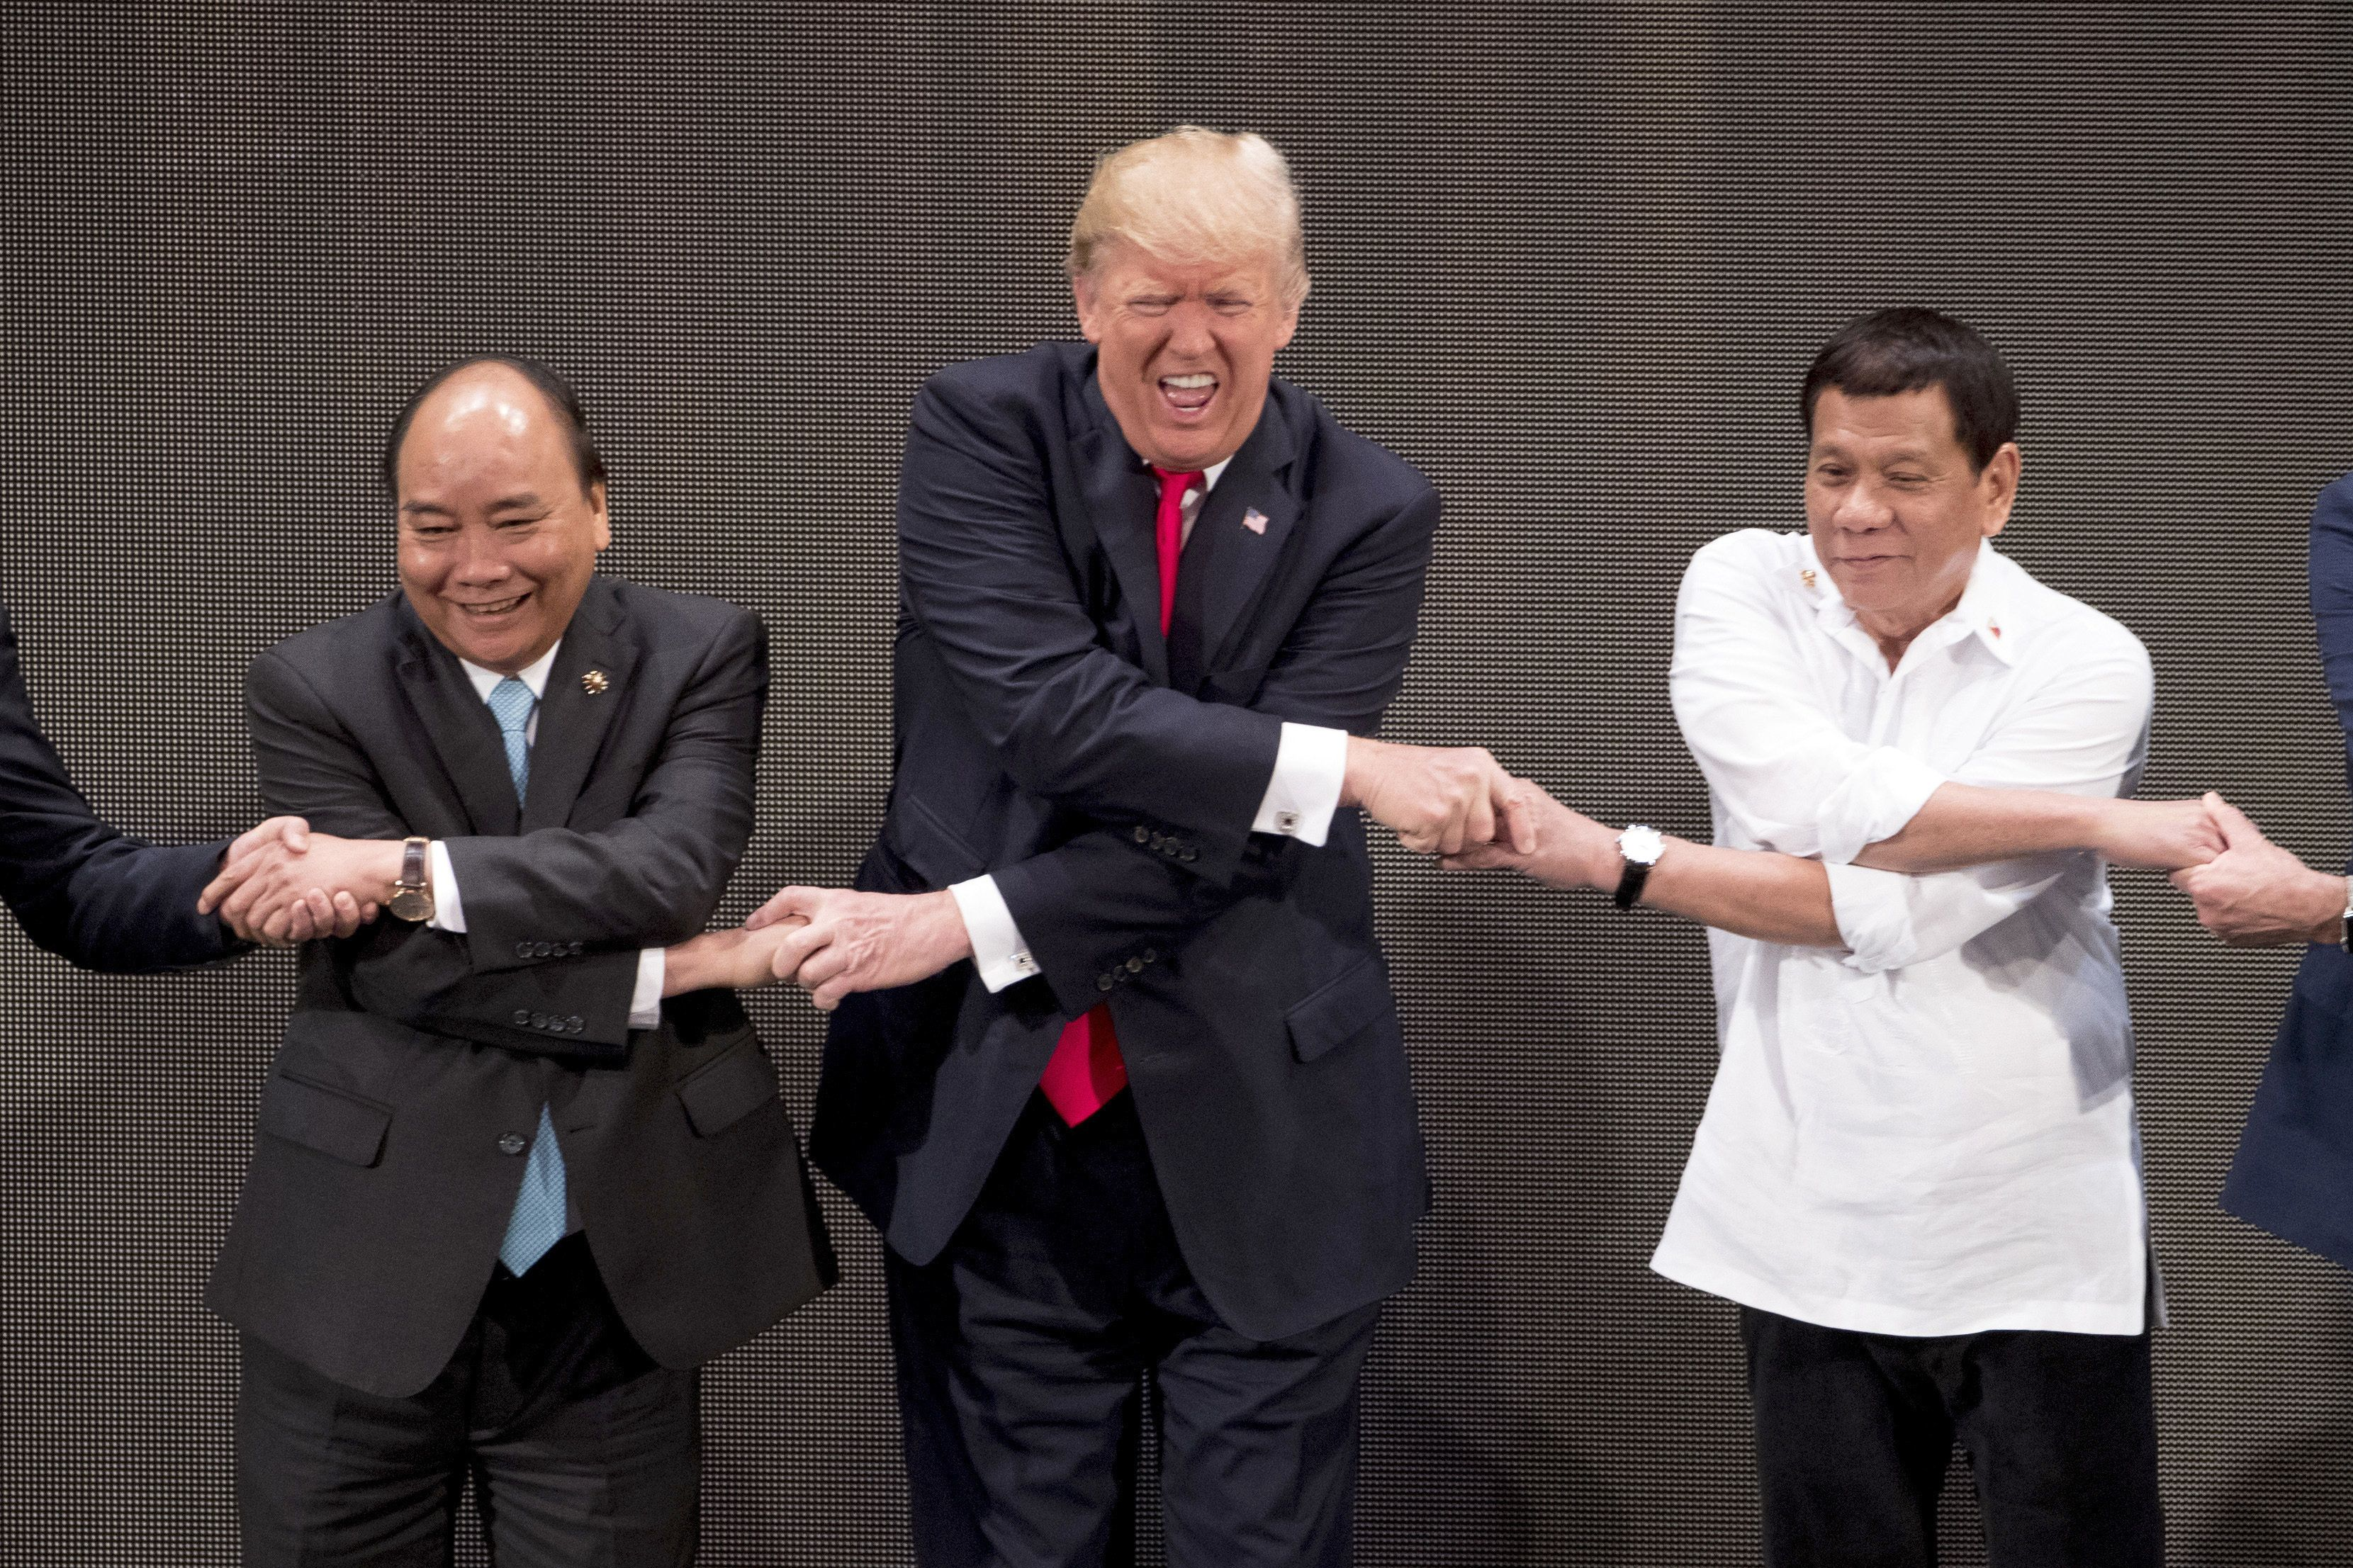 FILE  - In this Nov. 13, 2017, file photo, U.S. President Donald Trump, center, reacts as he does the ASEAN-way handshake' with Vietnamese Prime Minister Nguyen Xuan Phuc, left, and Philippine President Rodrigo Duterte on stage during the opening ceremony at the ASEAN Summit at the Cultural Center of the Philippines in Manila, Philippines. Trump has proven himself an unconventional leader time and time again in his first year in office. (AP Photo/Andrew Harnik, File)